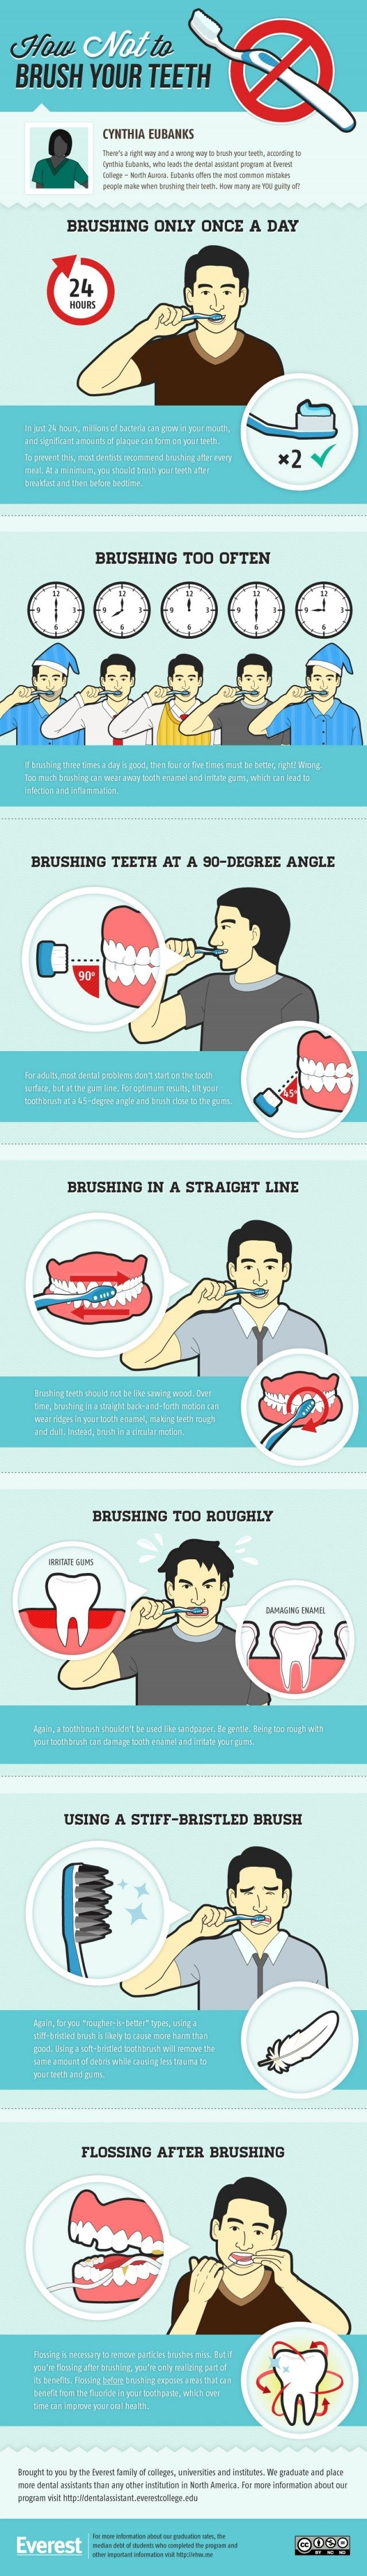 Simple, safe and easy guide that educates us about the dos and donts of excellent oral hygiene. Arm your brush and go. Source:http://infographicsmania.com/